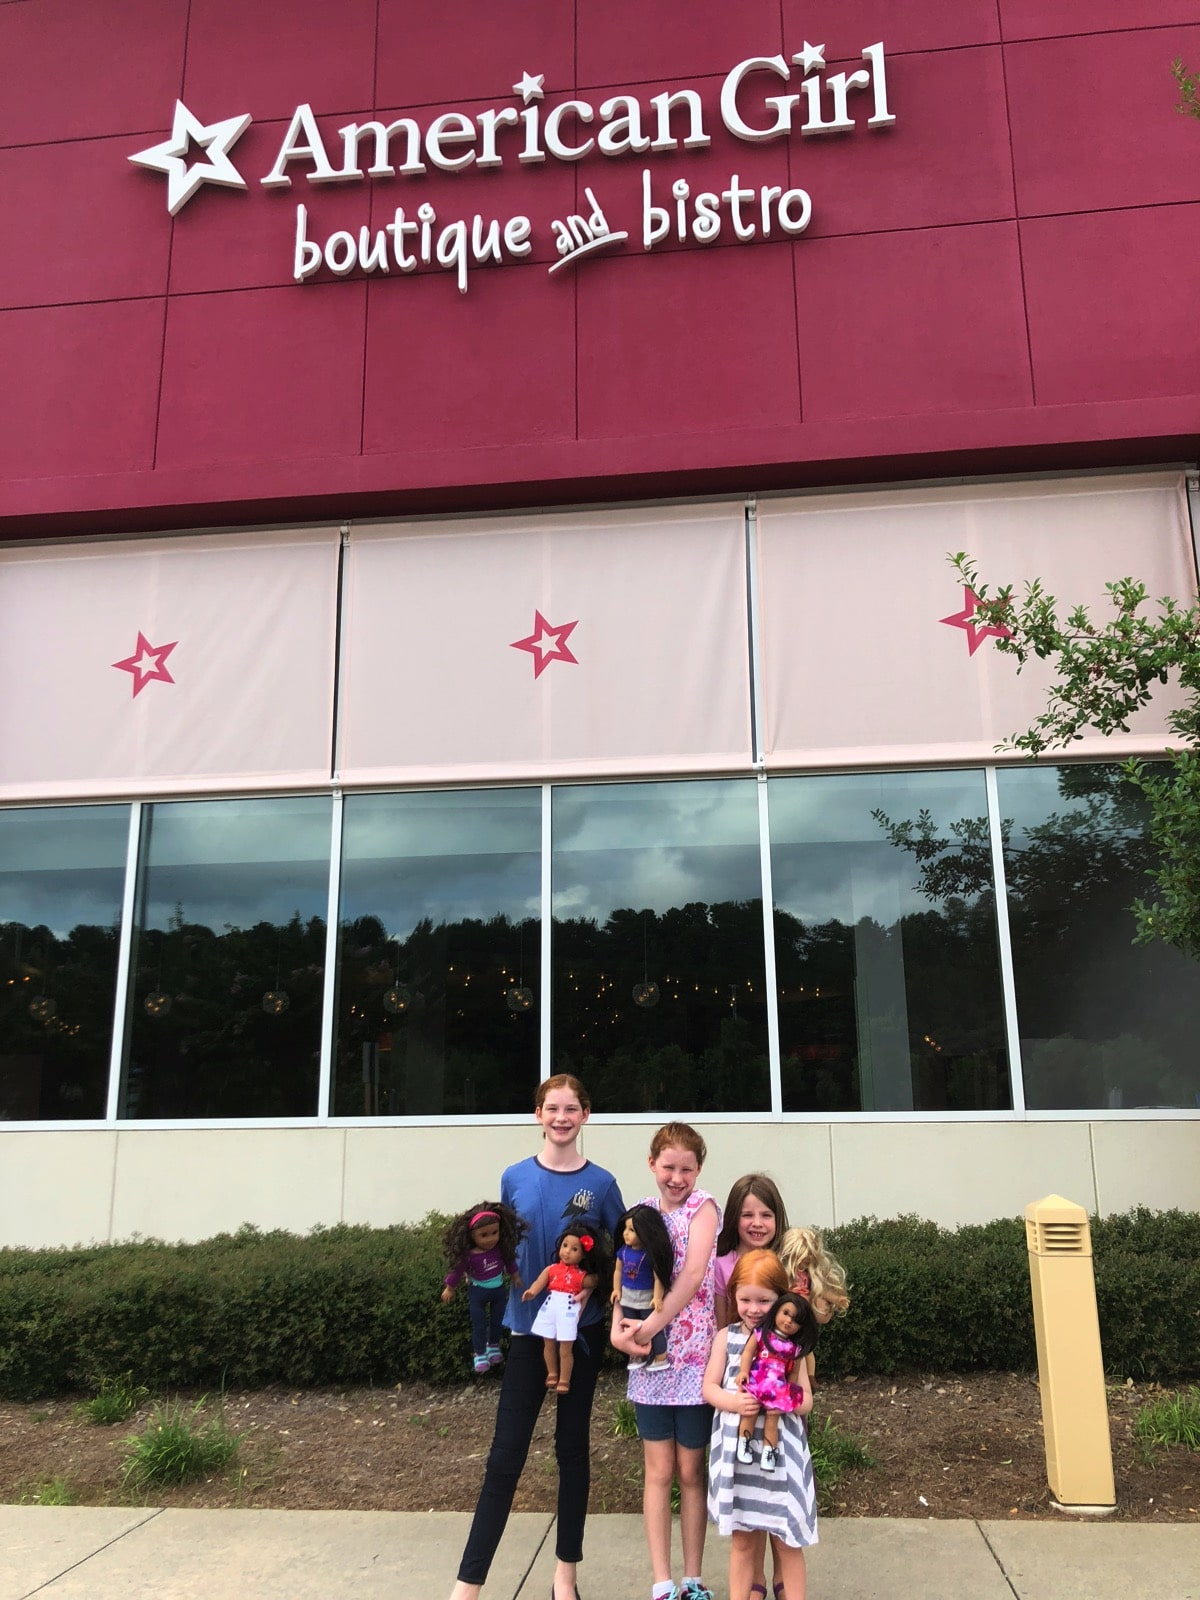 American Girl Store Boutique and Bistro